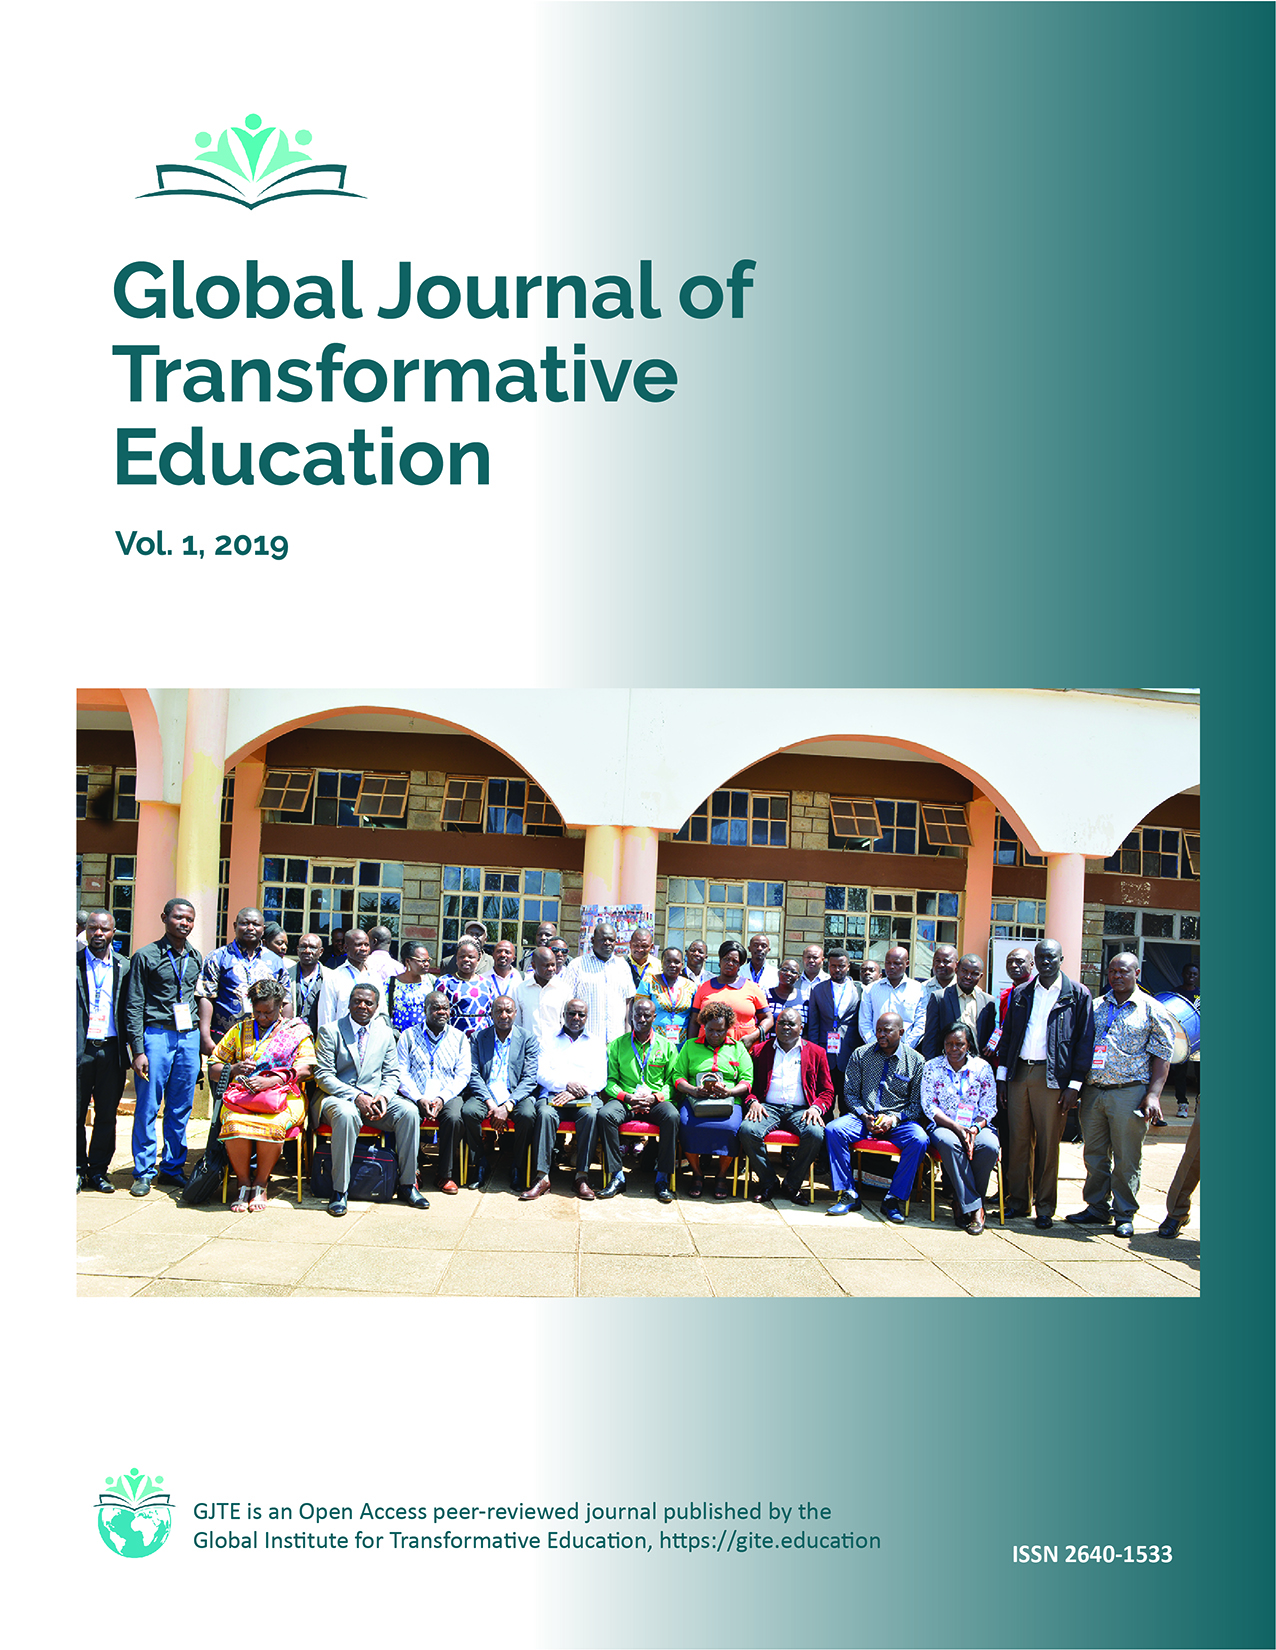 GJTE Cover - group picture from World Conference on Transformative Education